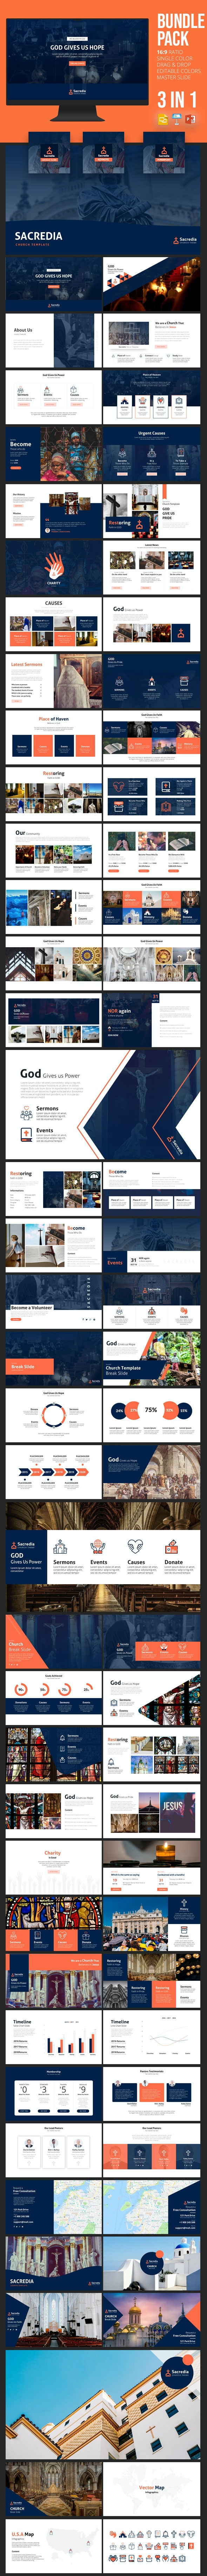 3 in 1 Church Presentation Template Bundle - Presentation Templates